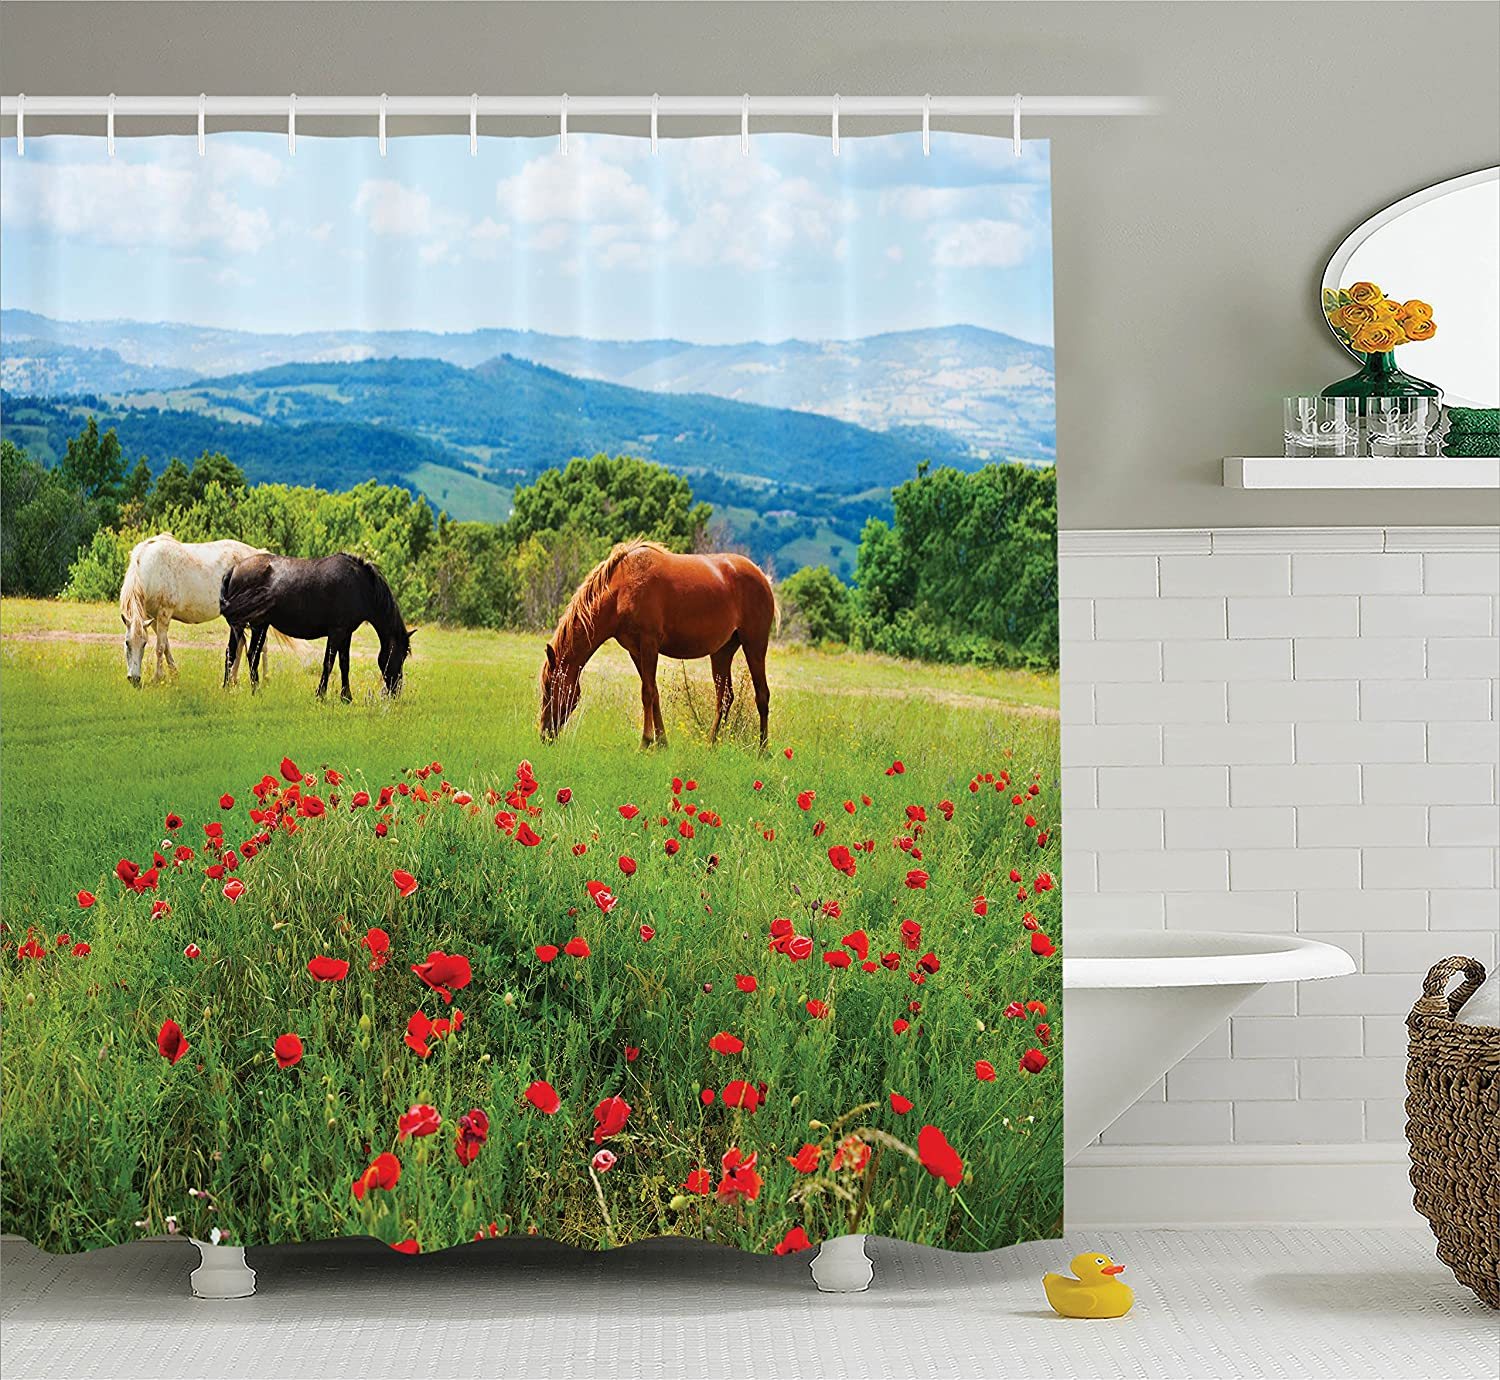 Polyester Fabric Bathroom Set with Hooks Yellow Red Sun seen Through Misty Old in Fall Season Morning View Dreamy Scenic Picture Ambesonne Forest Shower Curtain Tree Woodland Decor